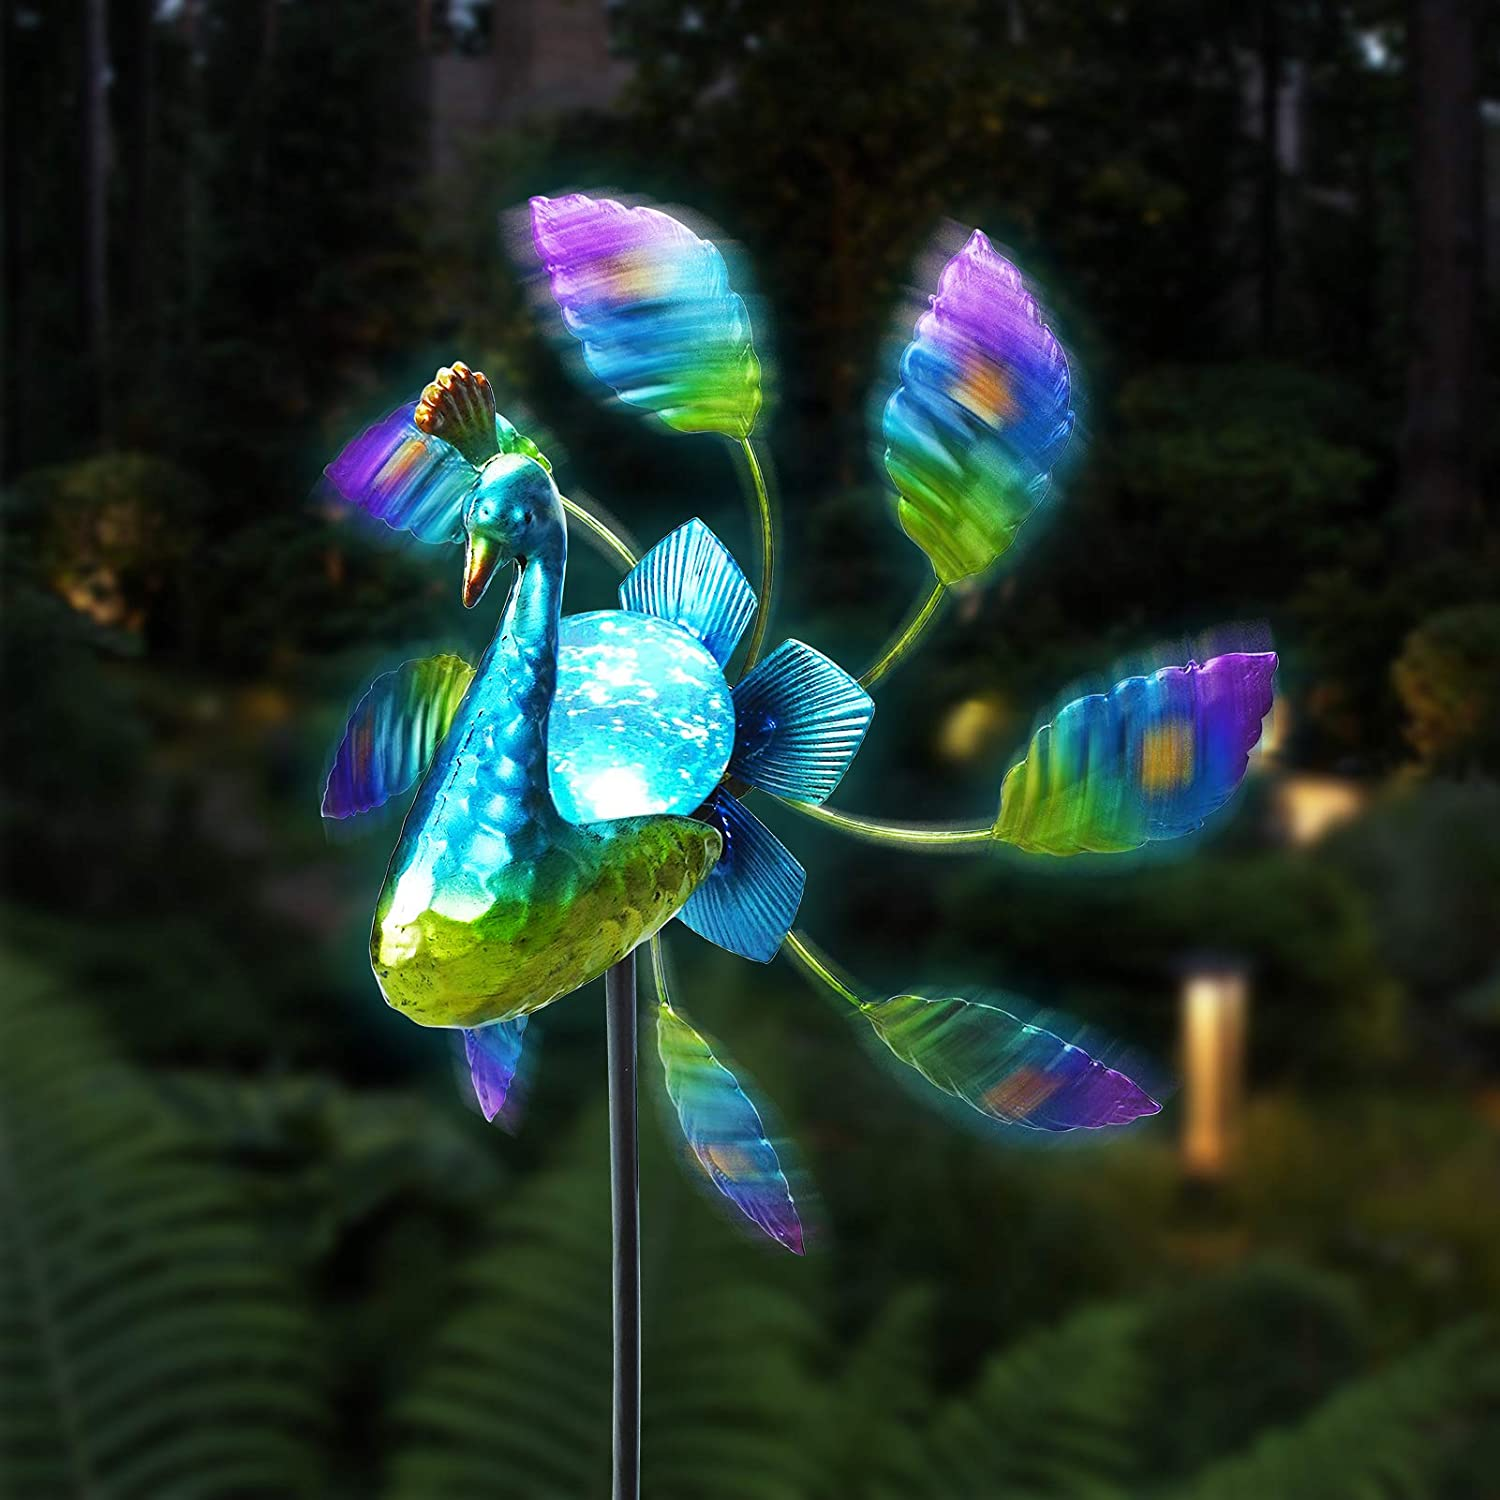 Untimaty Solar Wind Spinner Garden Lights Metal Peacock Stake Waterproof Glass Solar Powered Stake for Outdoor Patio Yard Pathway Decorations